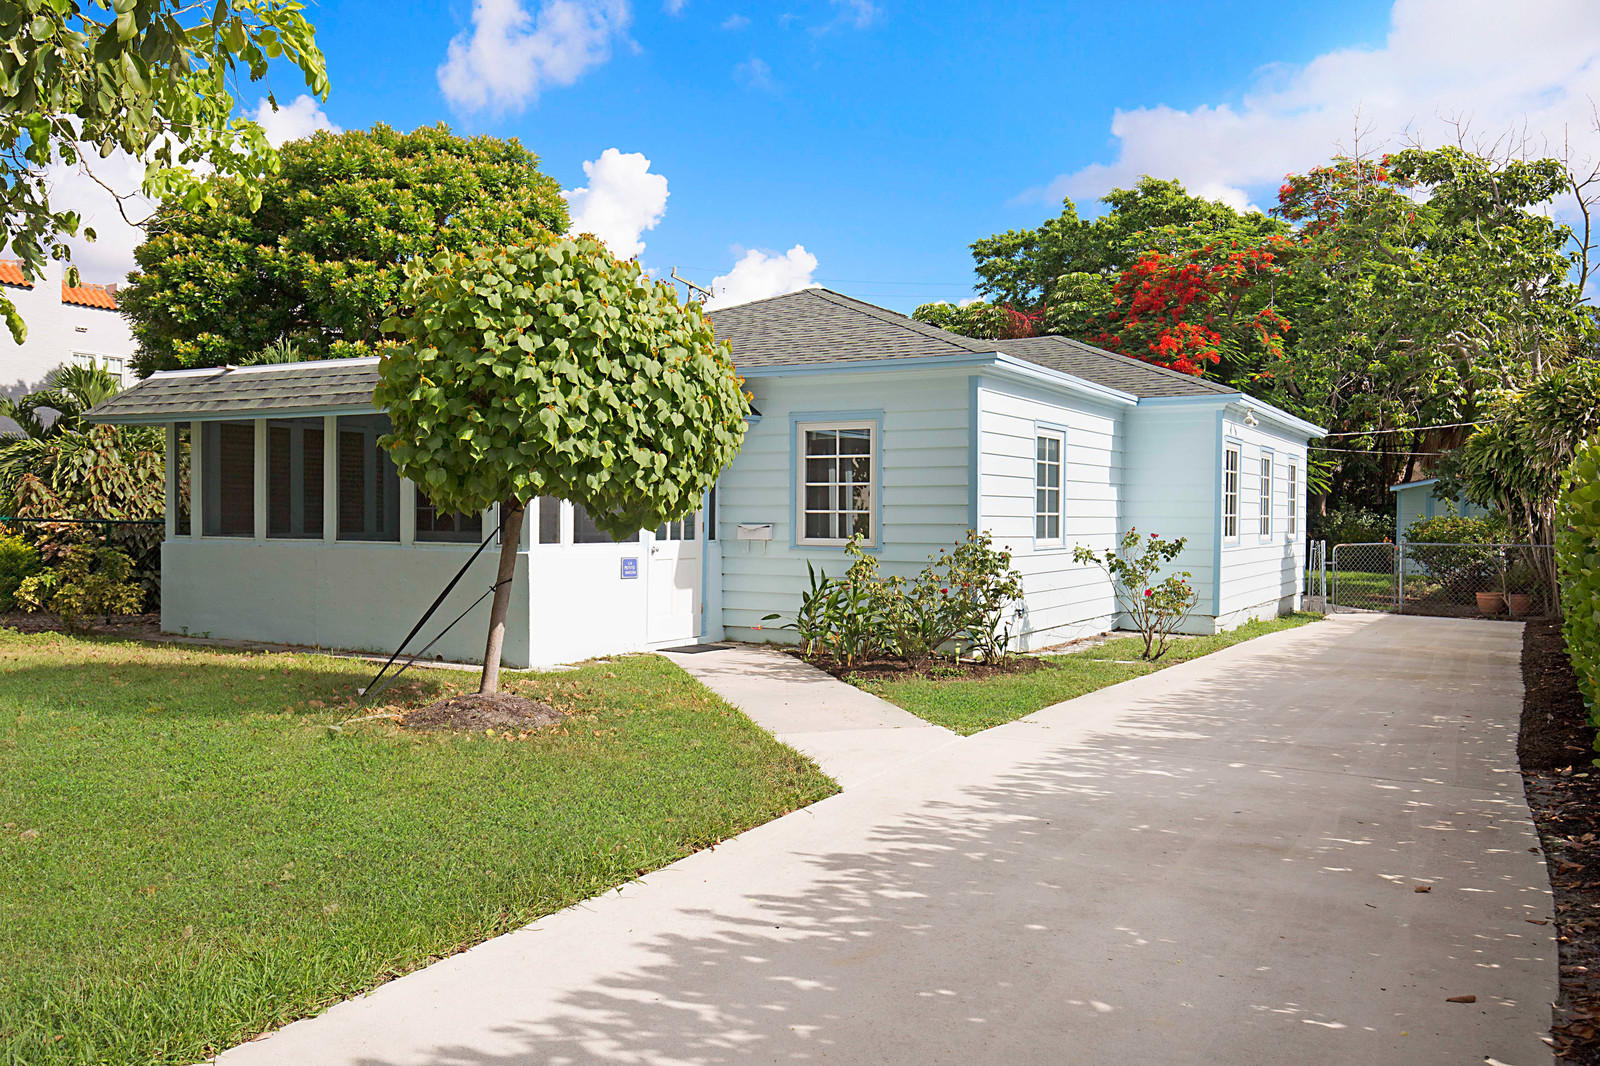 309 Edgewood Drive, West Palm Beach, FL 33405